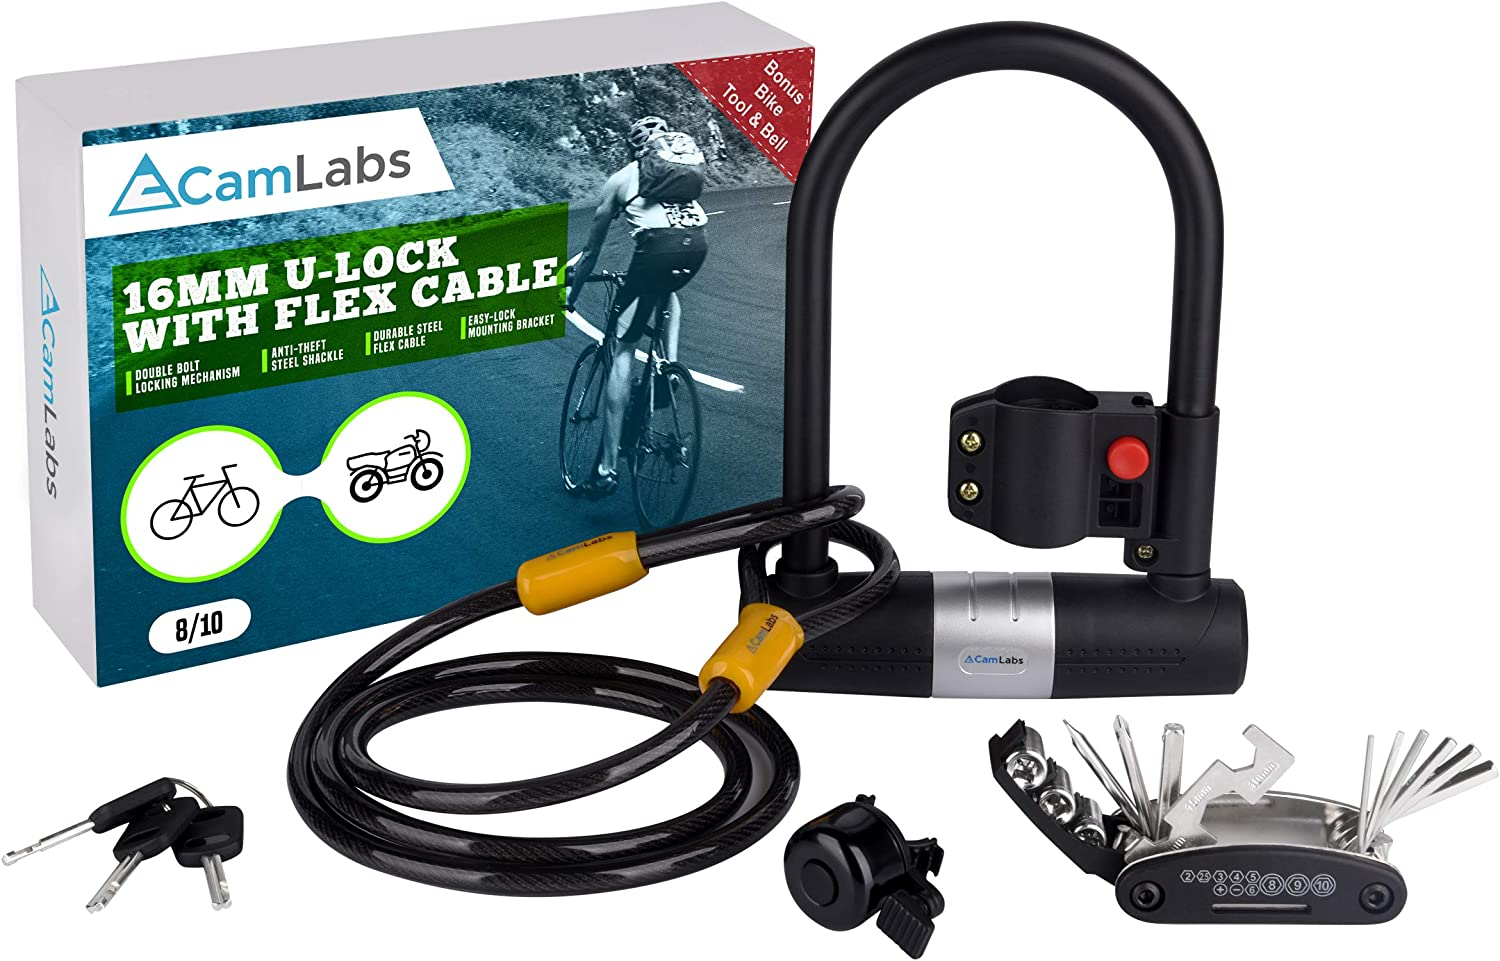 Bike U Lock Cable Bicycle Safety Tool Lock 3Ft 10mm w//2 keys Anti-Theft